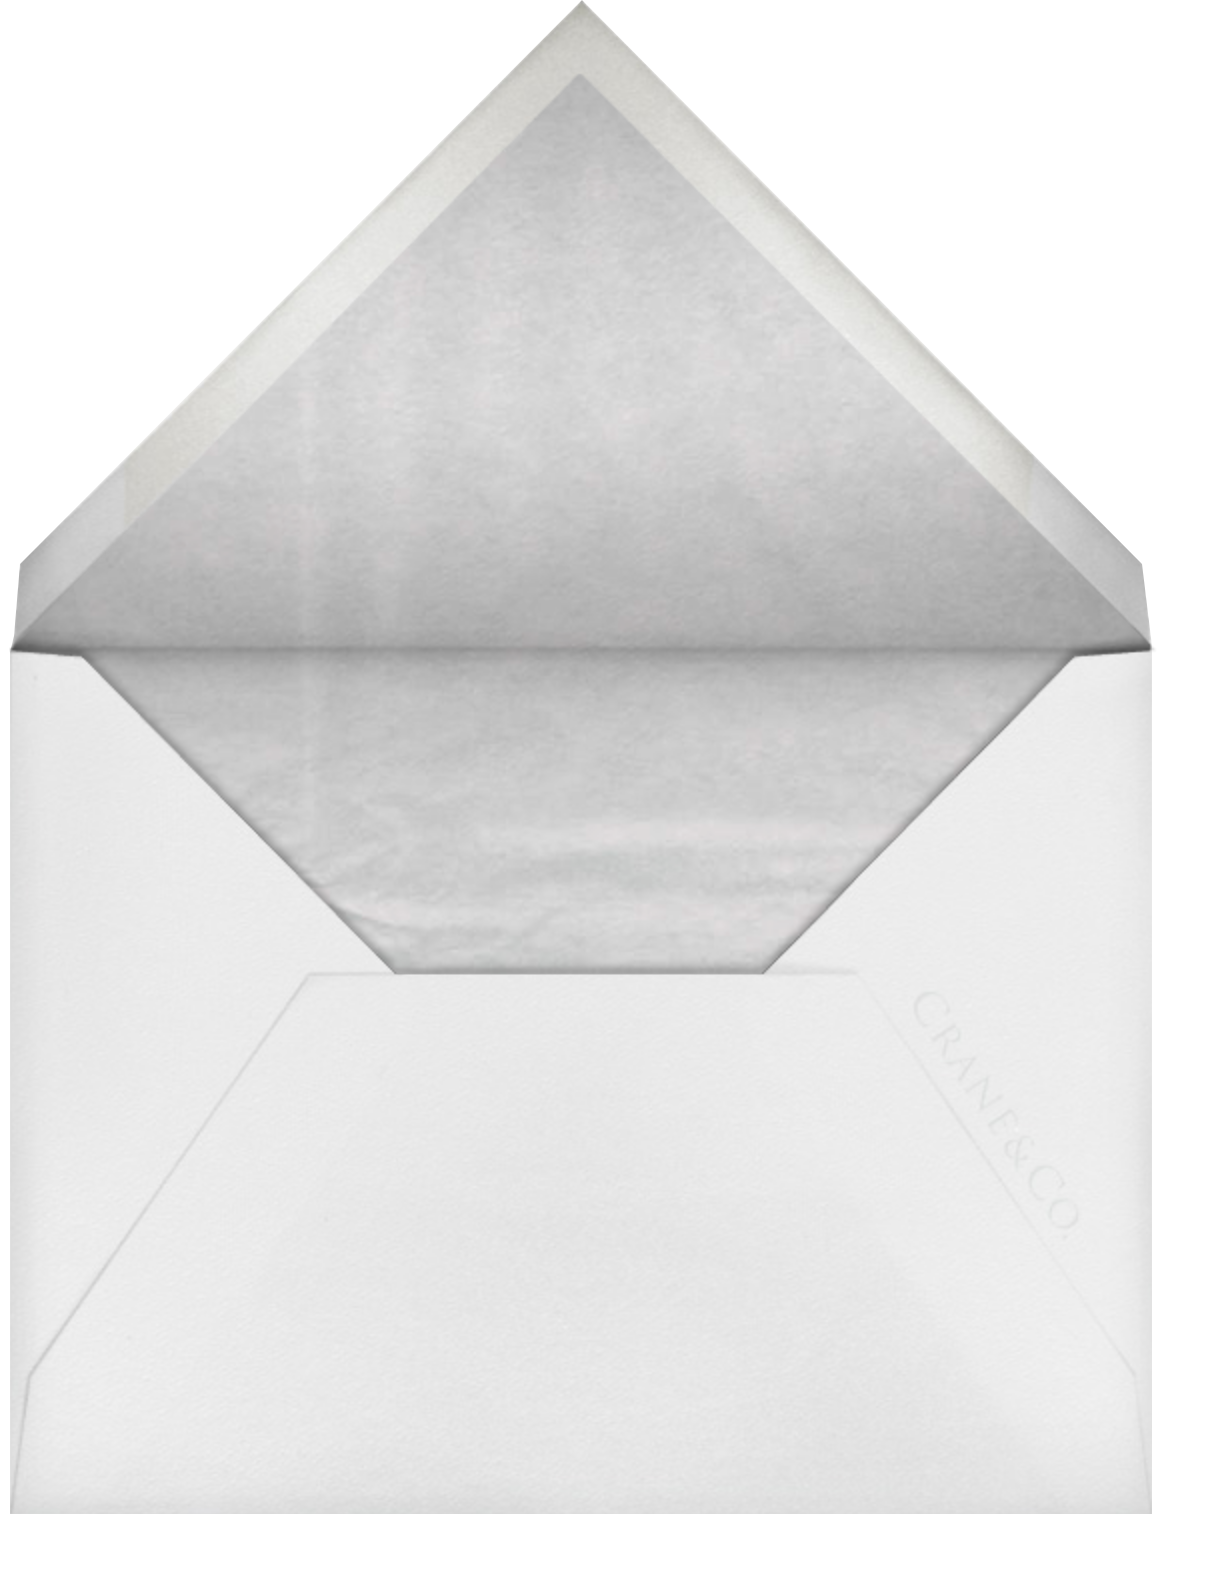 Emily I (Save The Date) - Platinum - Paperless Post - null - envelope back